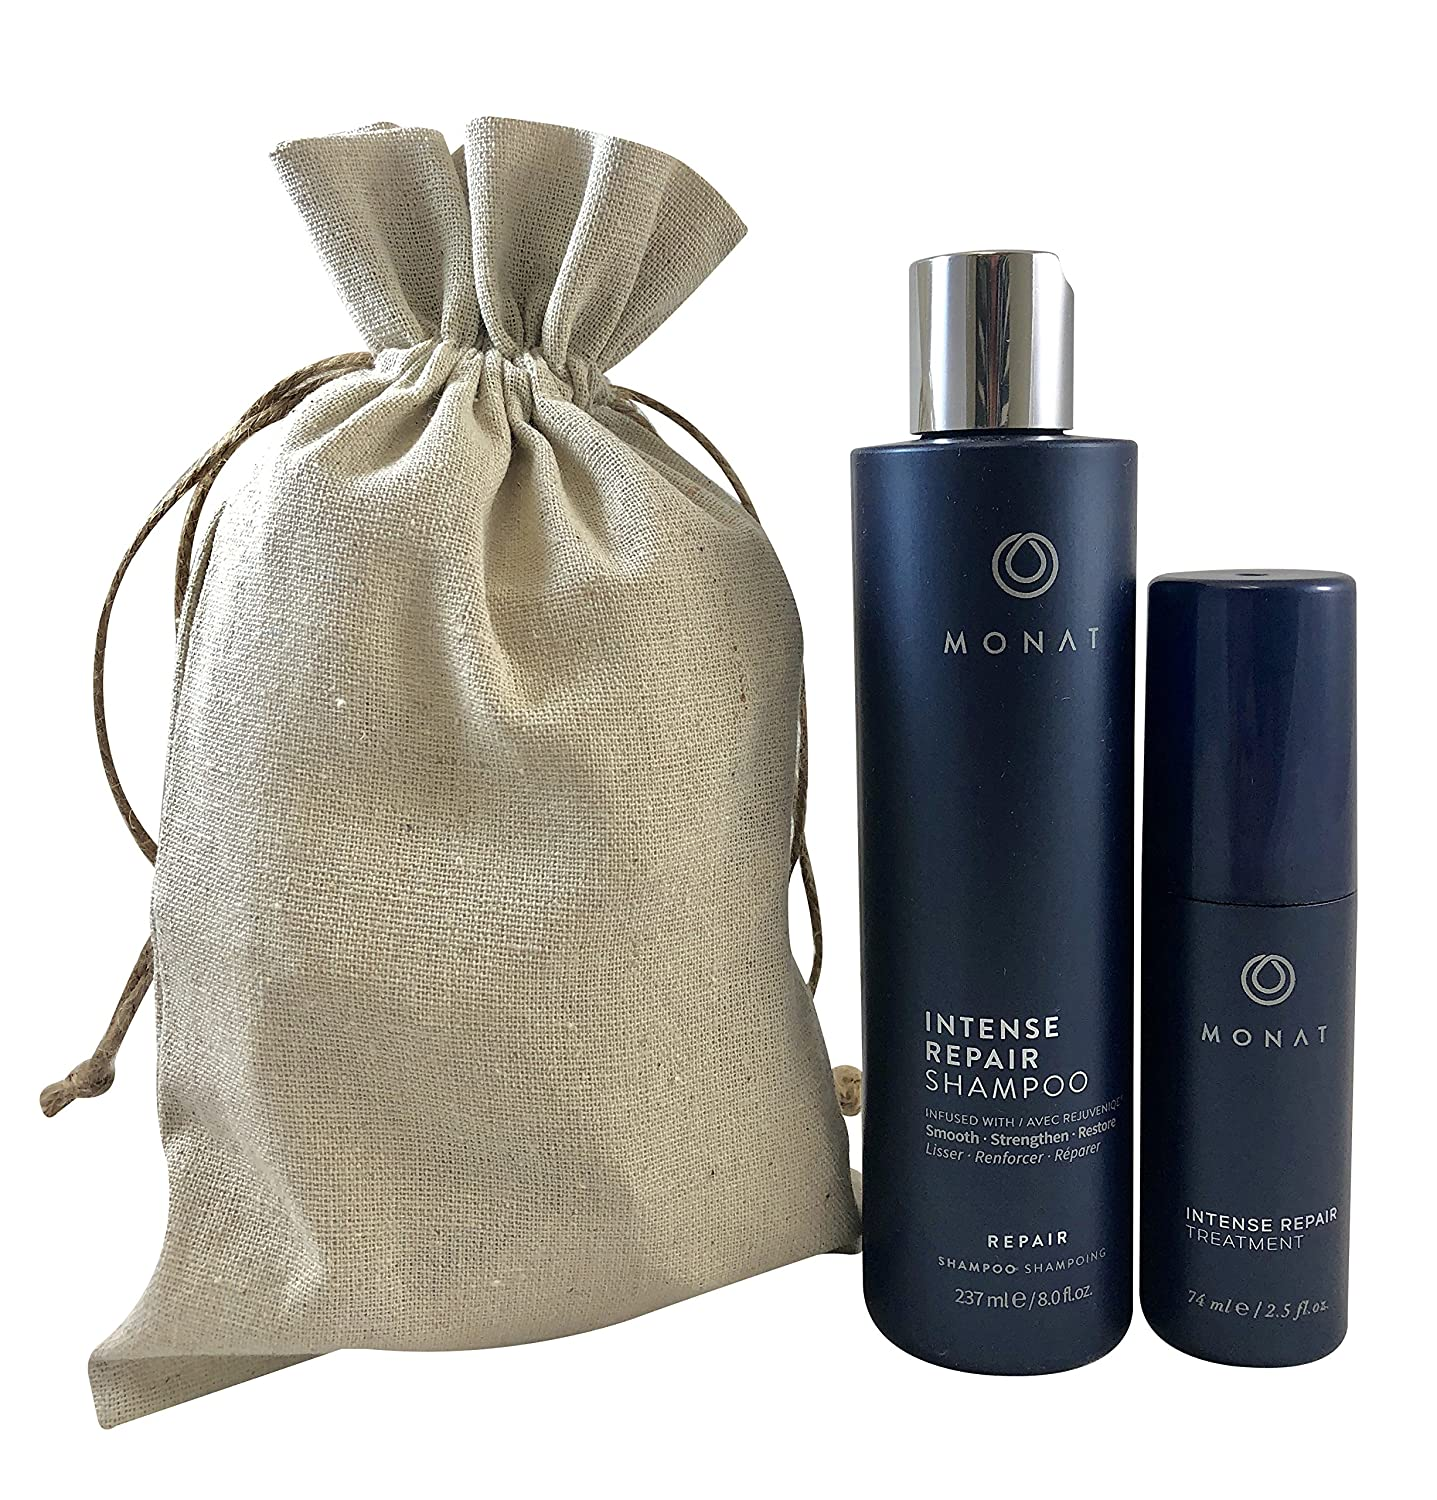 Monat Regrowth (Let it Grow) System - Intense Repair Shampoo and Intense Repair Hair Treatment Bundle with Free Linen Bag